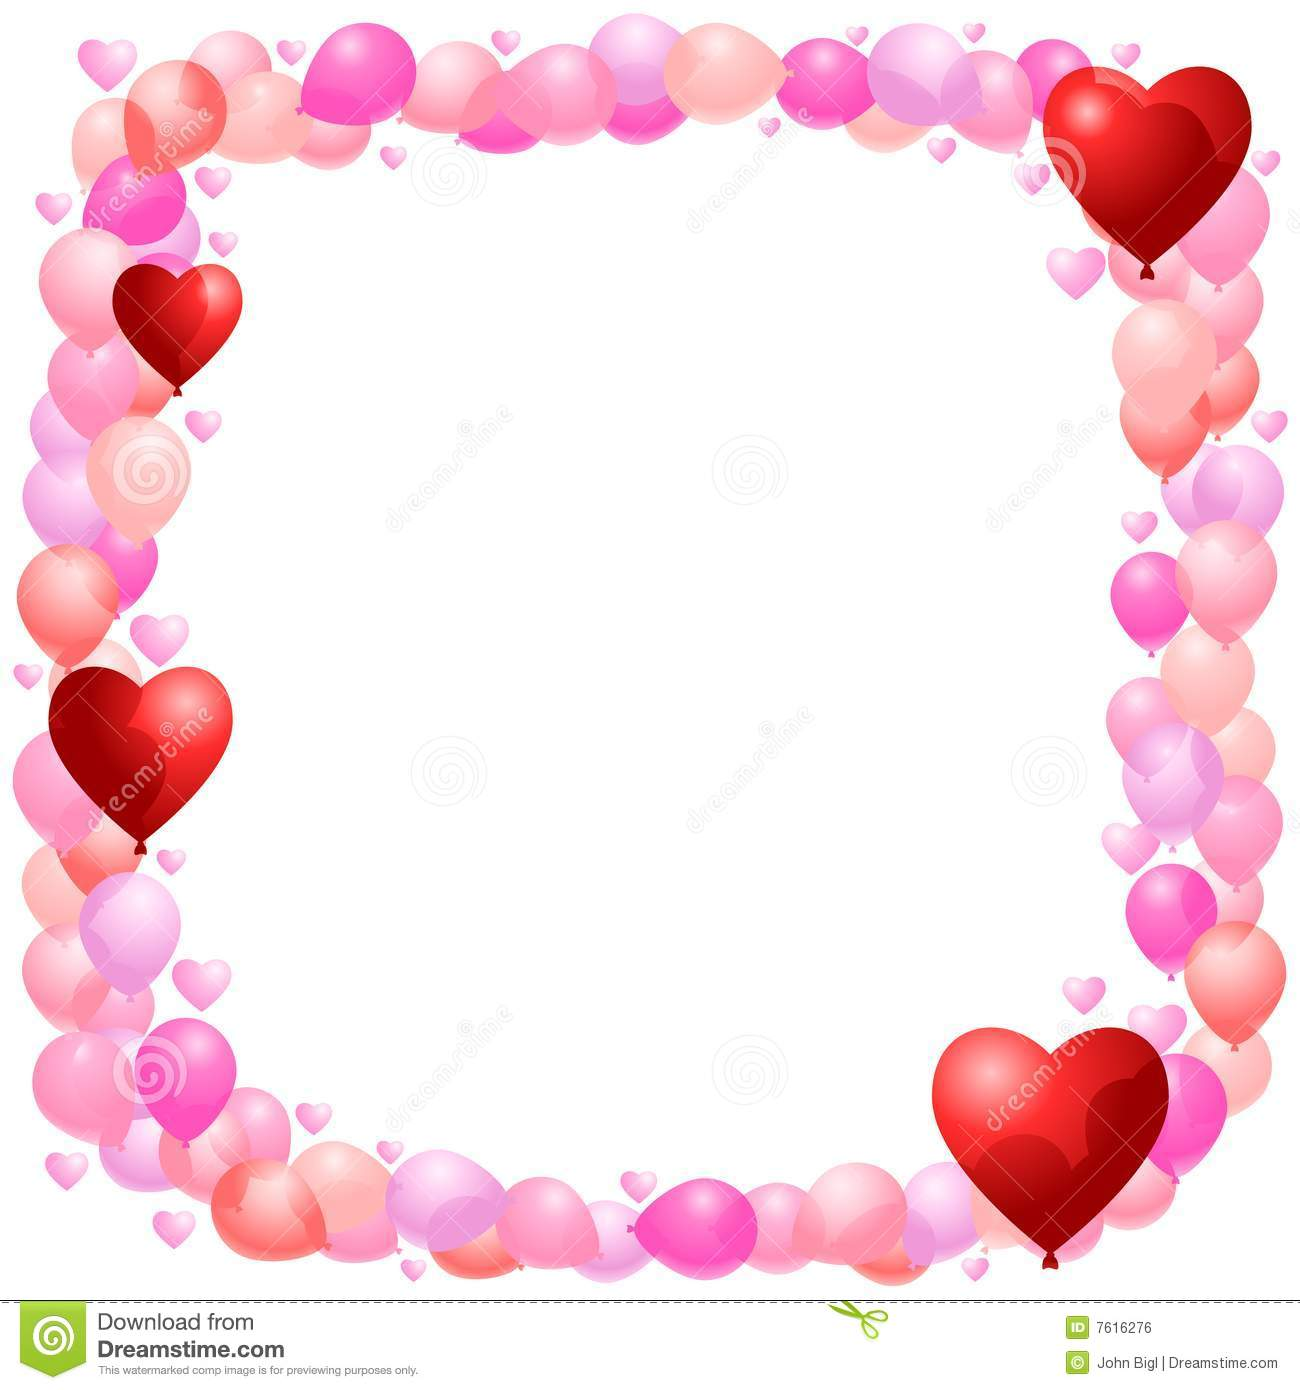 balloon frame with hearts royalty free stock image